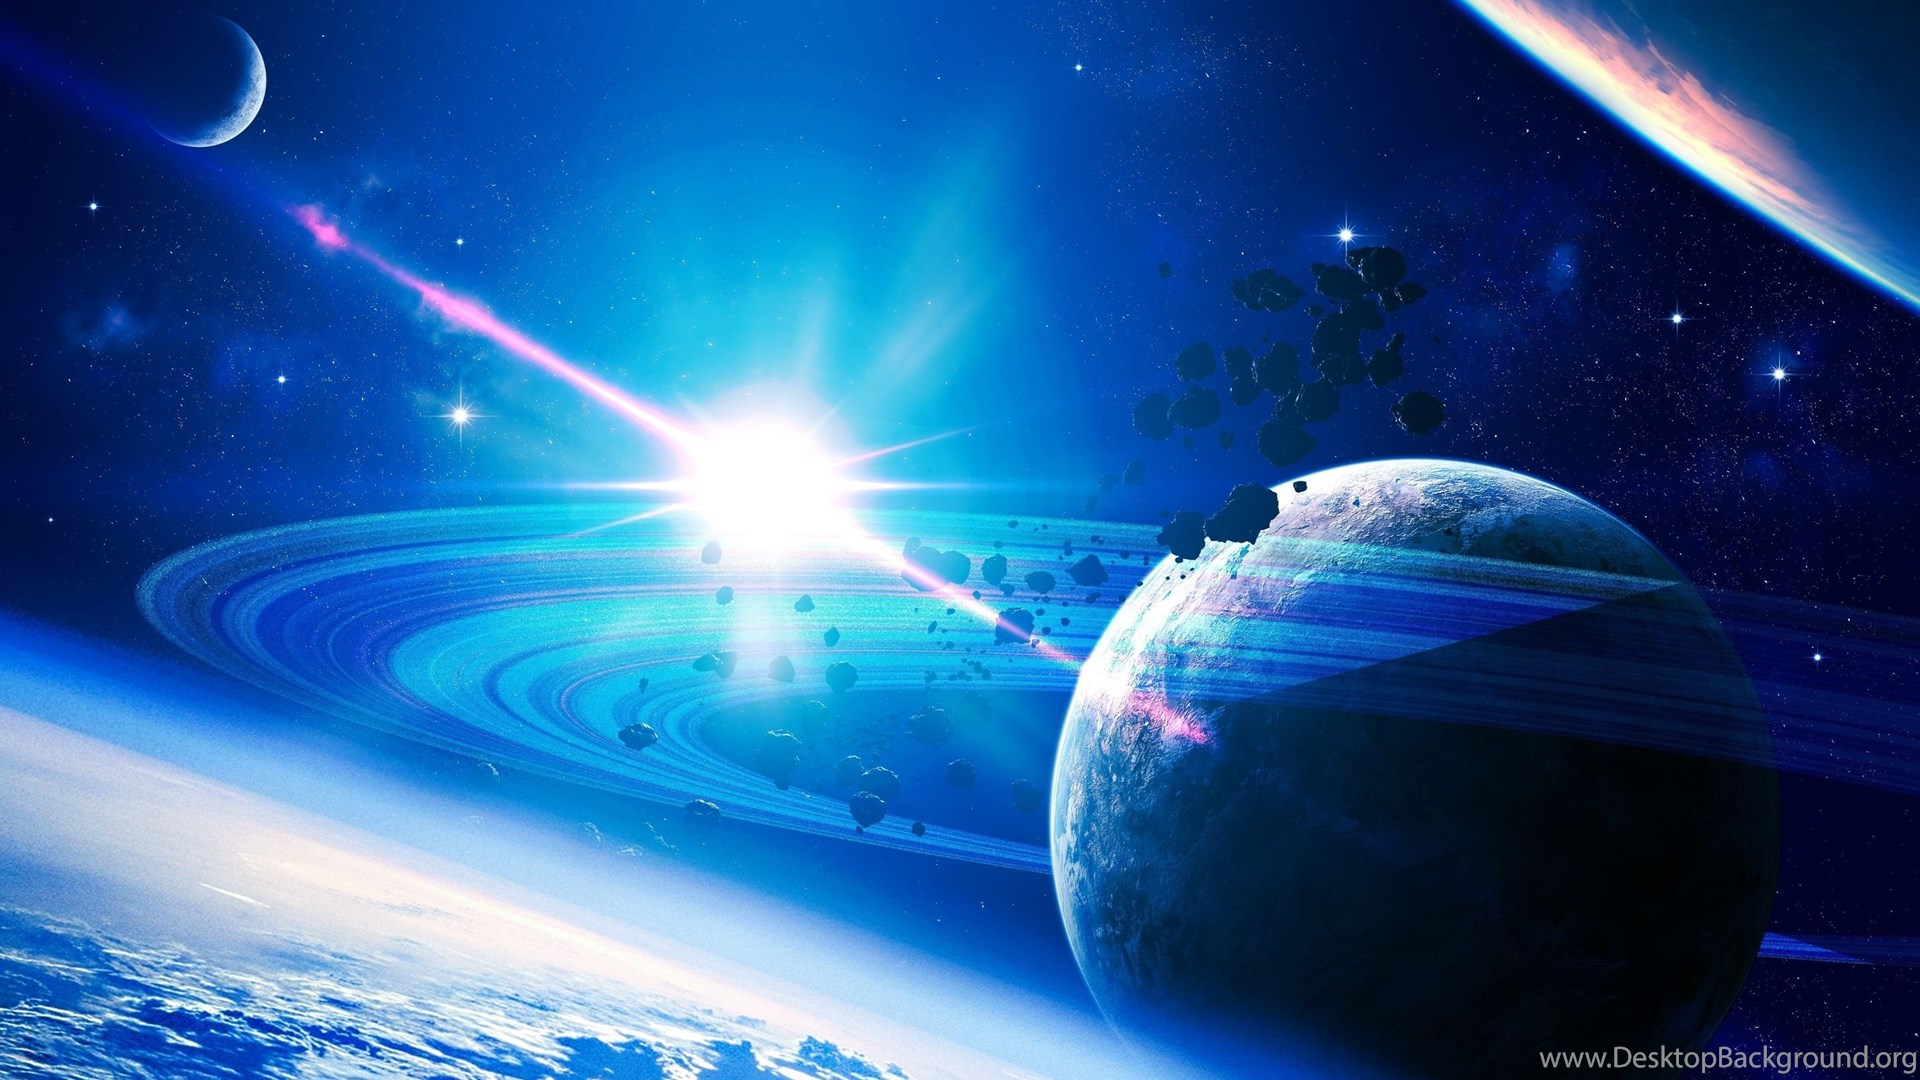 Cool hd pictures of planets and stars pics about space - Deep blue space wallpaper ...